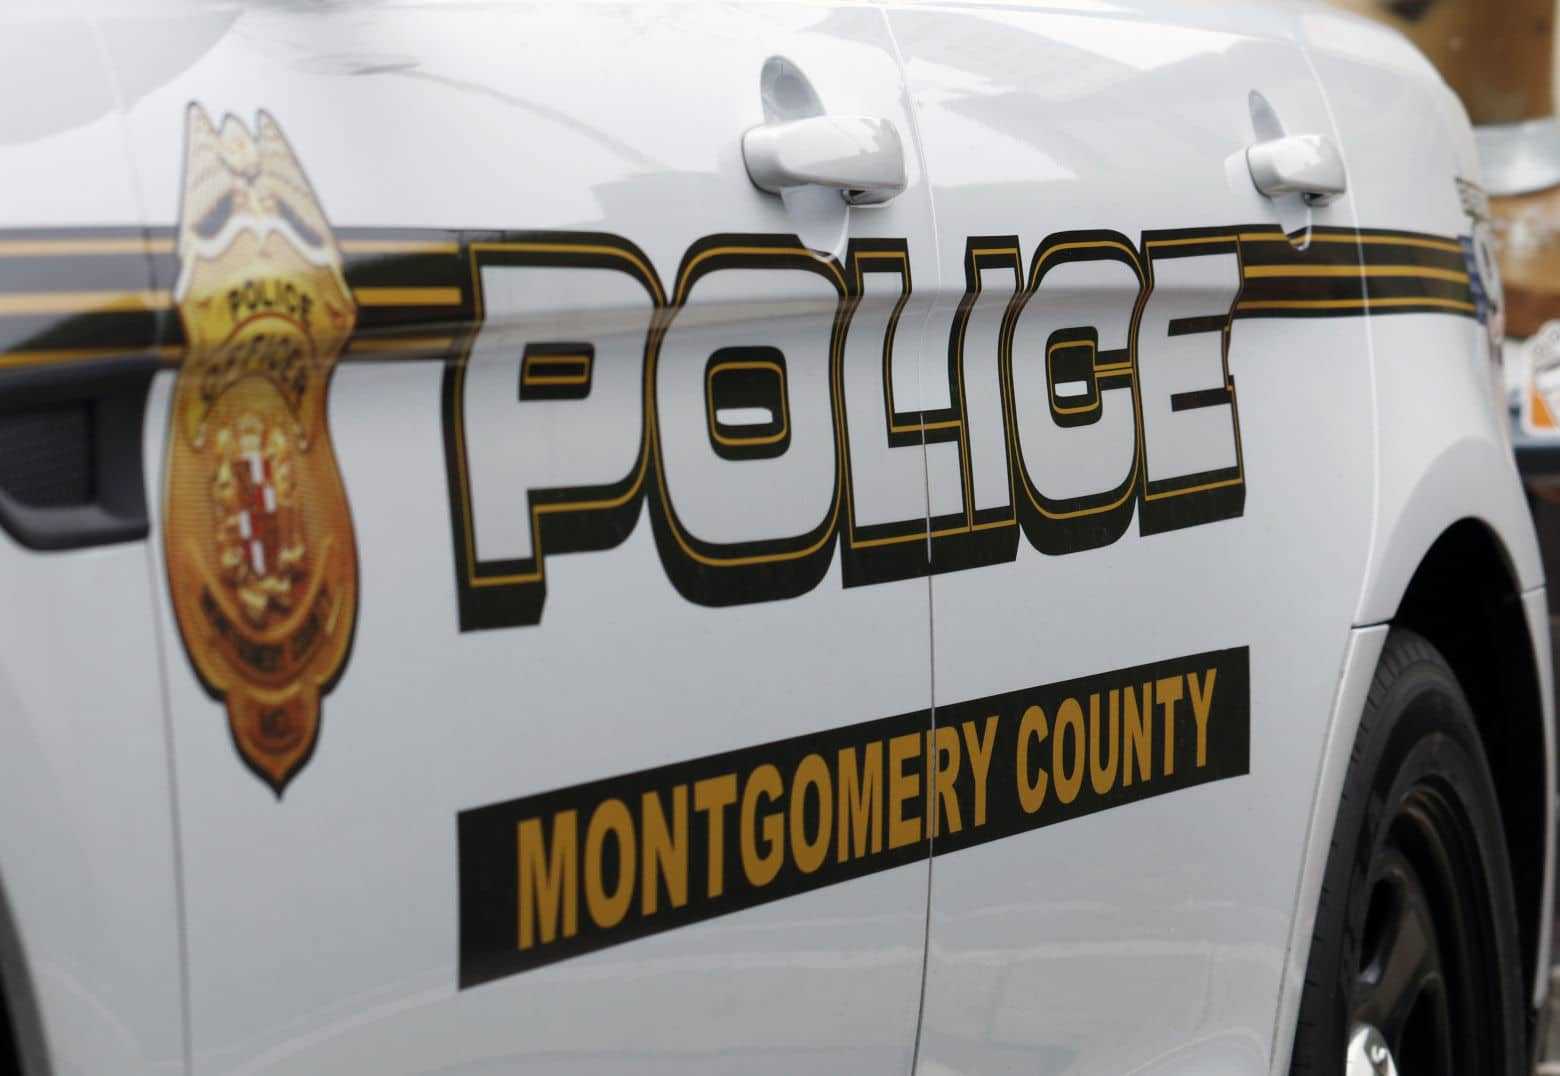 Delays on Beltway in Md. after high-speed police chase ends in crash